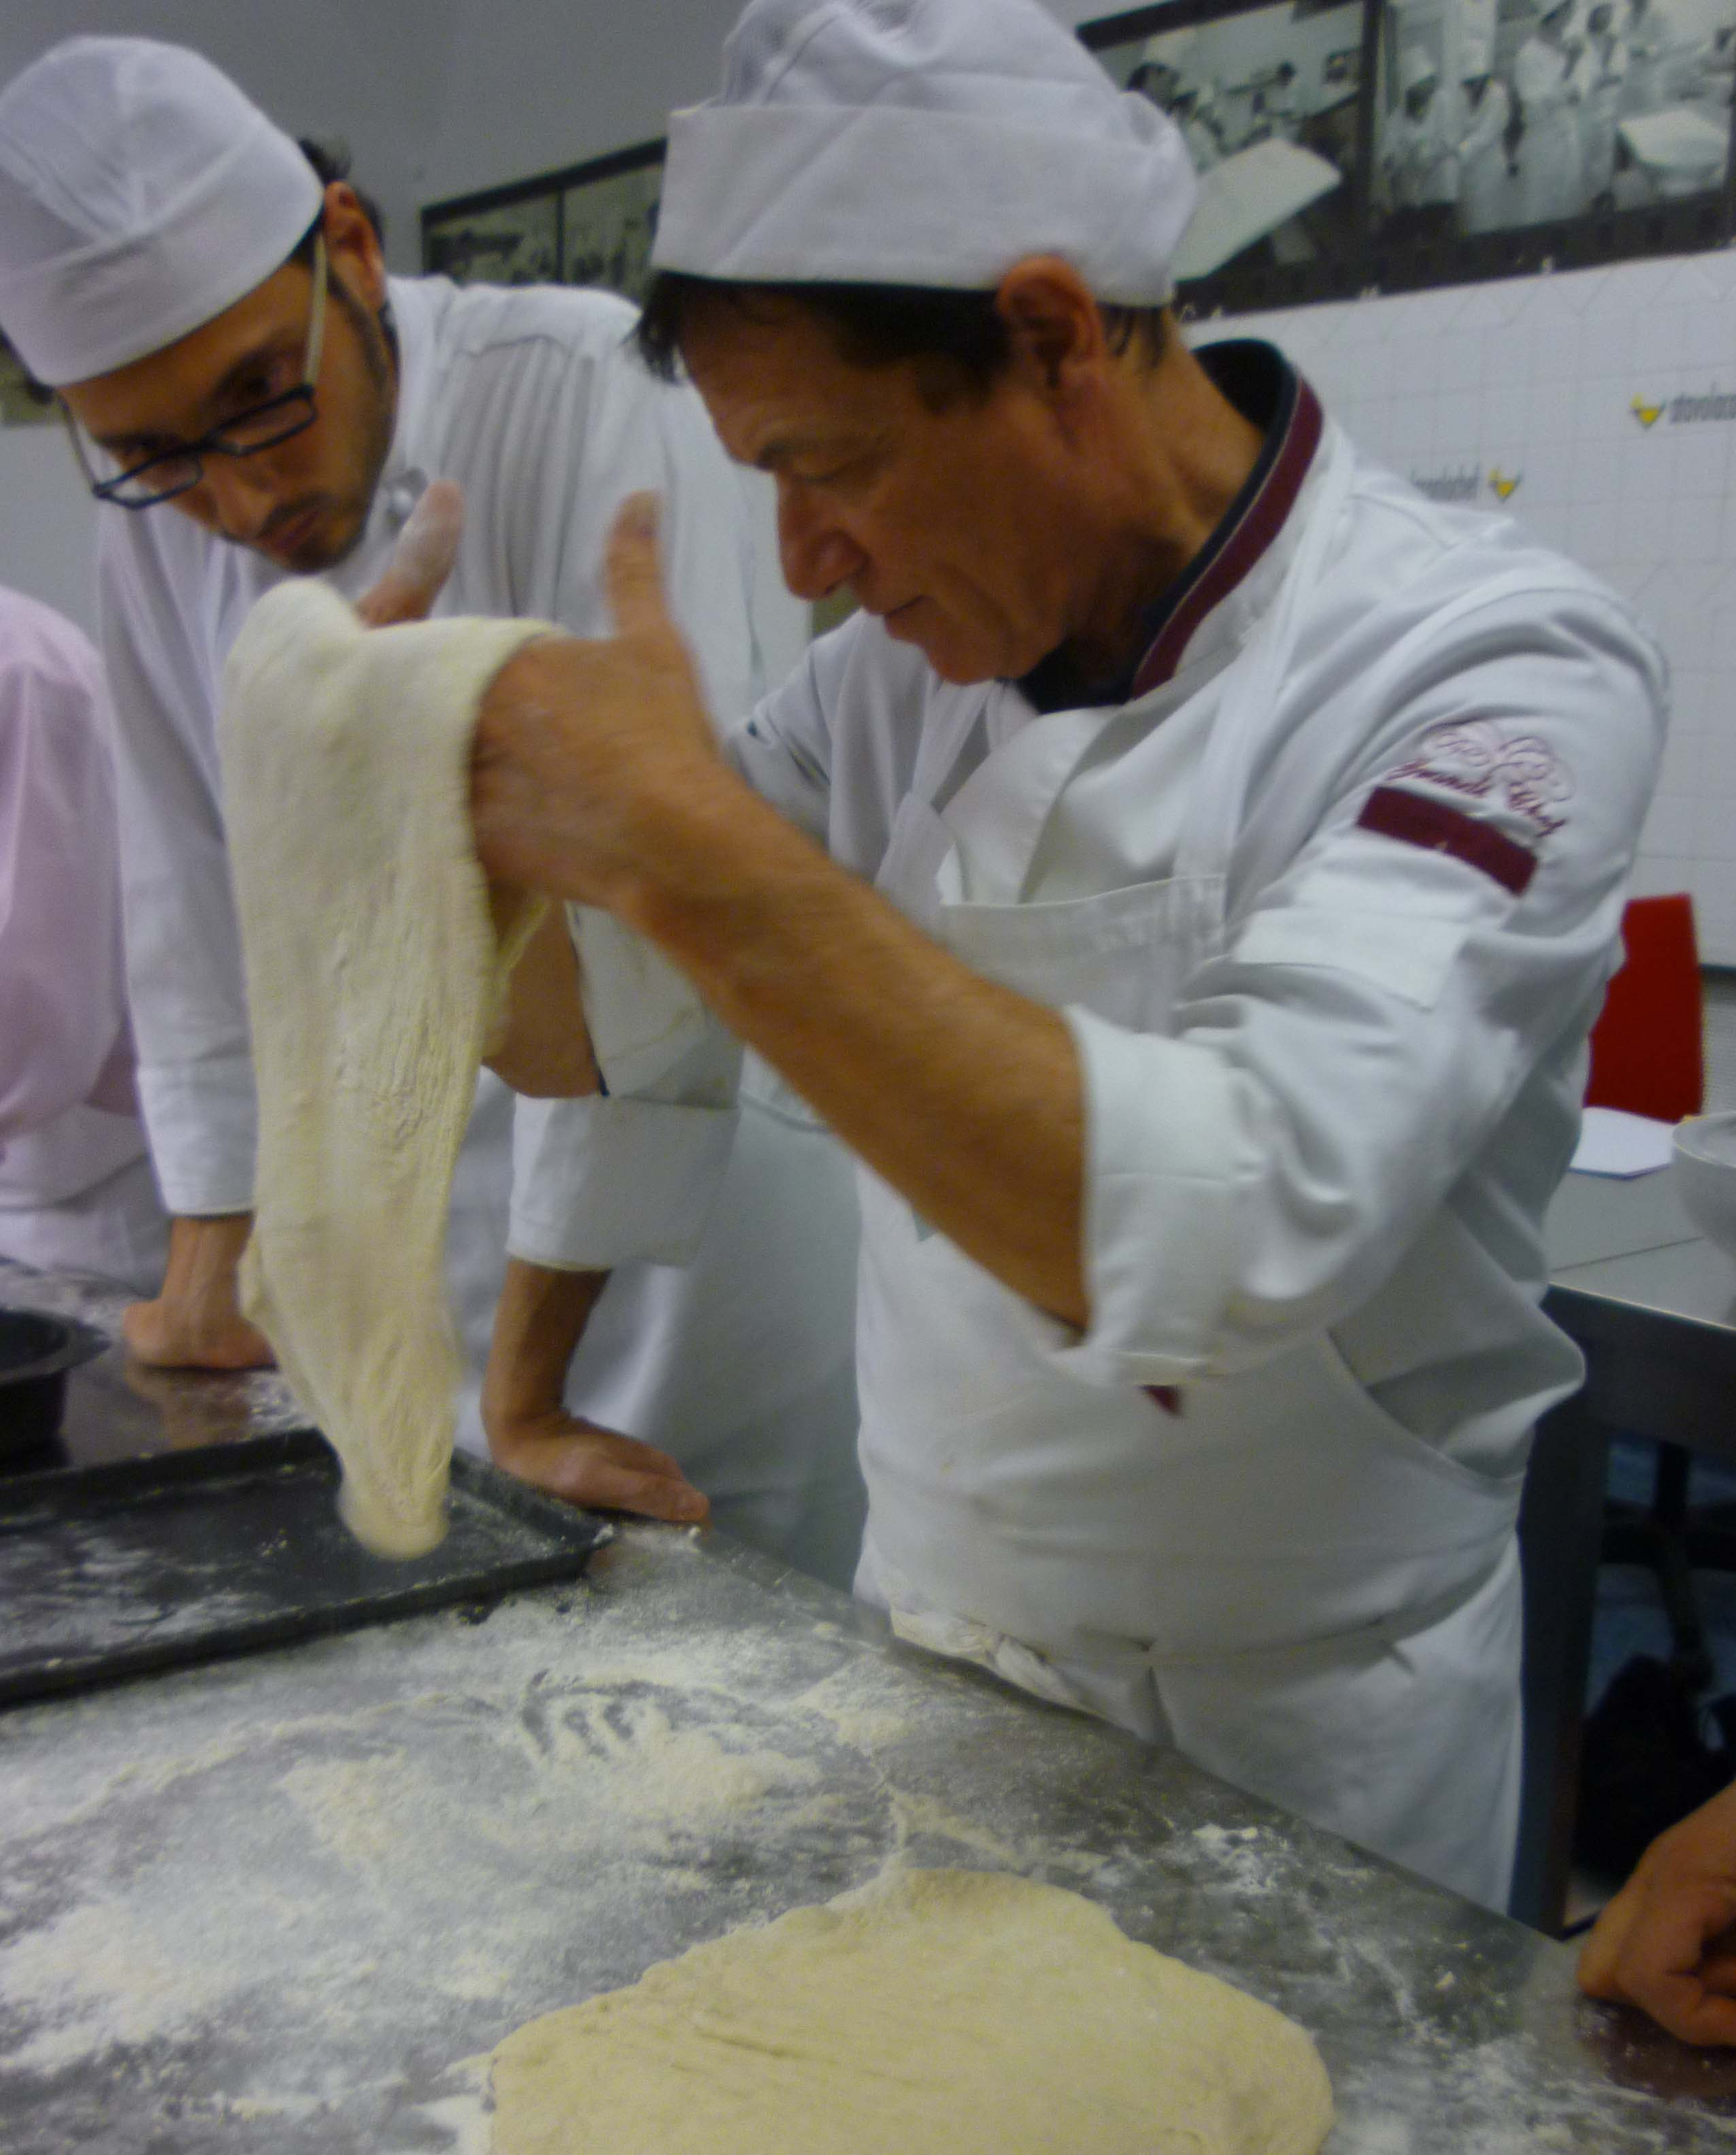 Cooking Up a Cultural Experience: Learning to Make Pizza in Italy